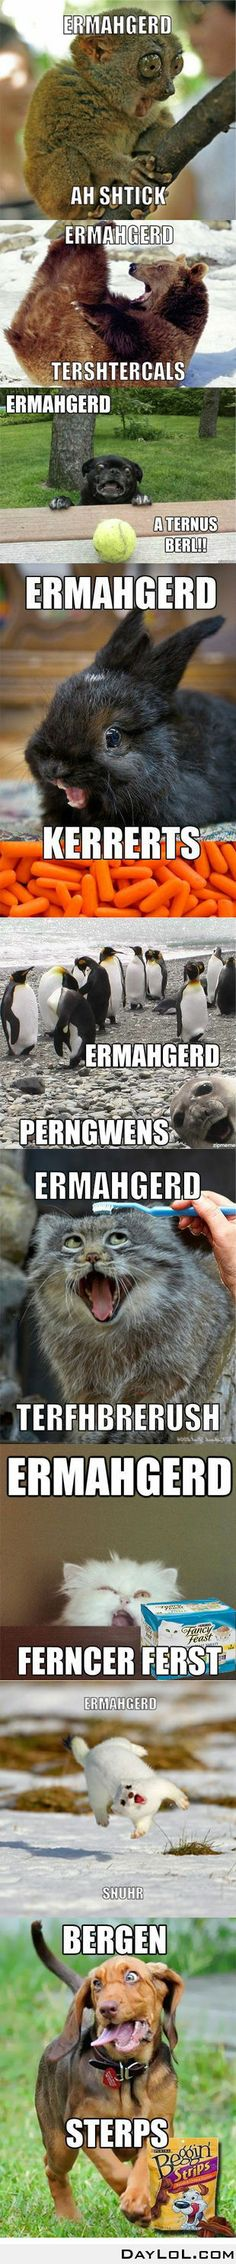 ERMAHGERD! So stupid, but I cannot stop laughing.